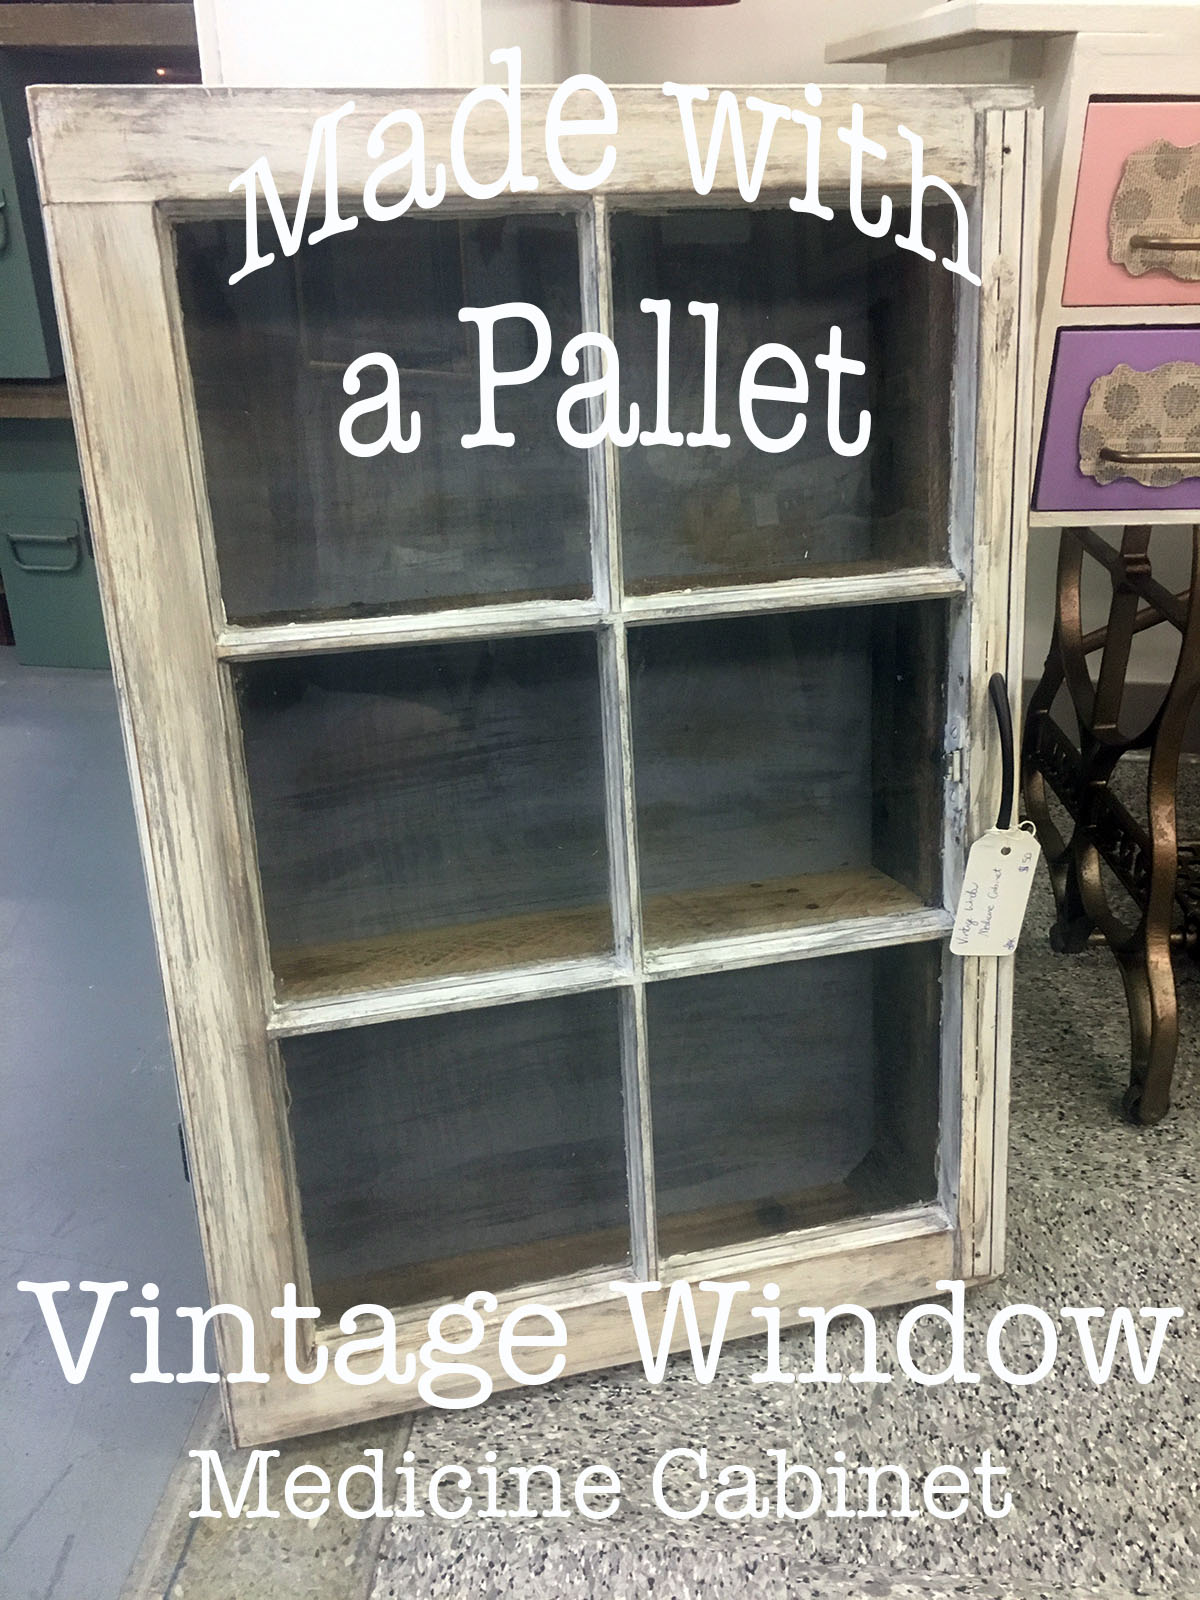 Vintage Window Medicine Cabinet – from a Pallet!